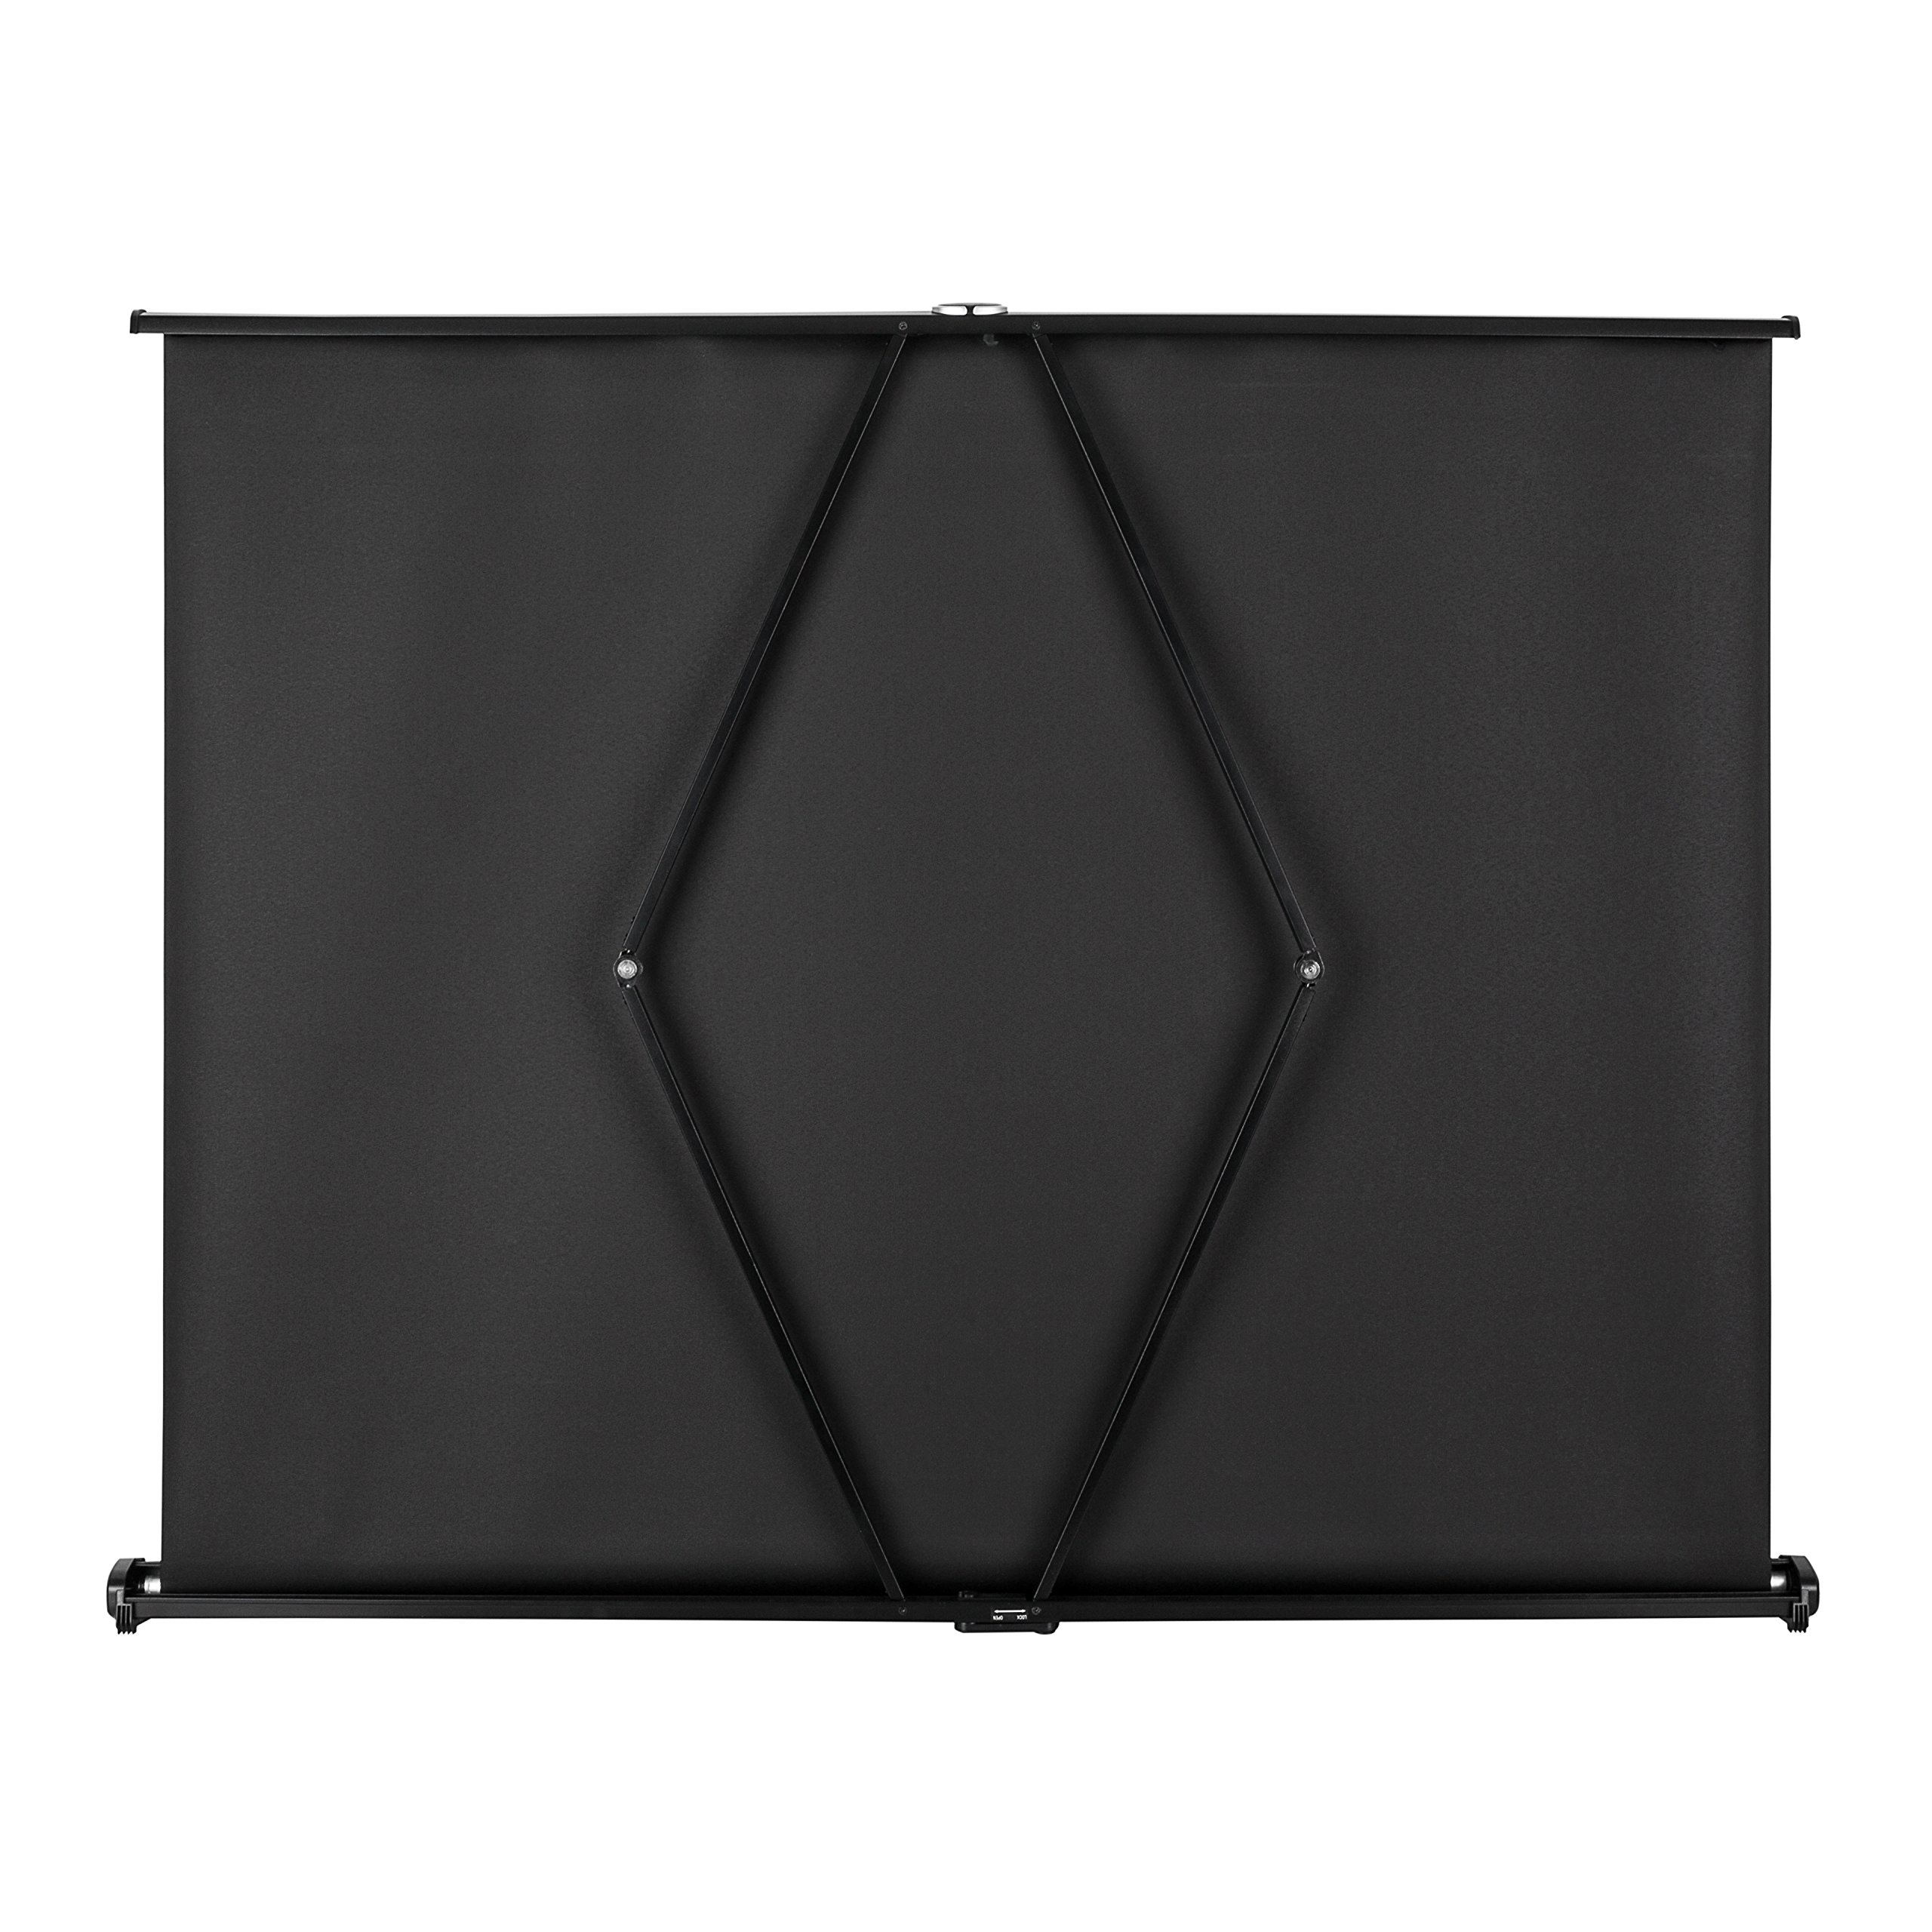 CHEERLUX Ultra Portable ProjectorTabletop Projection Screen 50'' 4:3 For DLP Projector , Mini Projector,Home and Office Business Meeting With Carrying Bag by Cheerlux (Image #5)